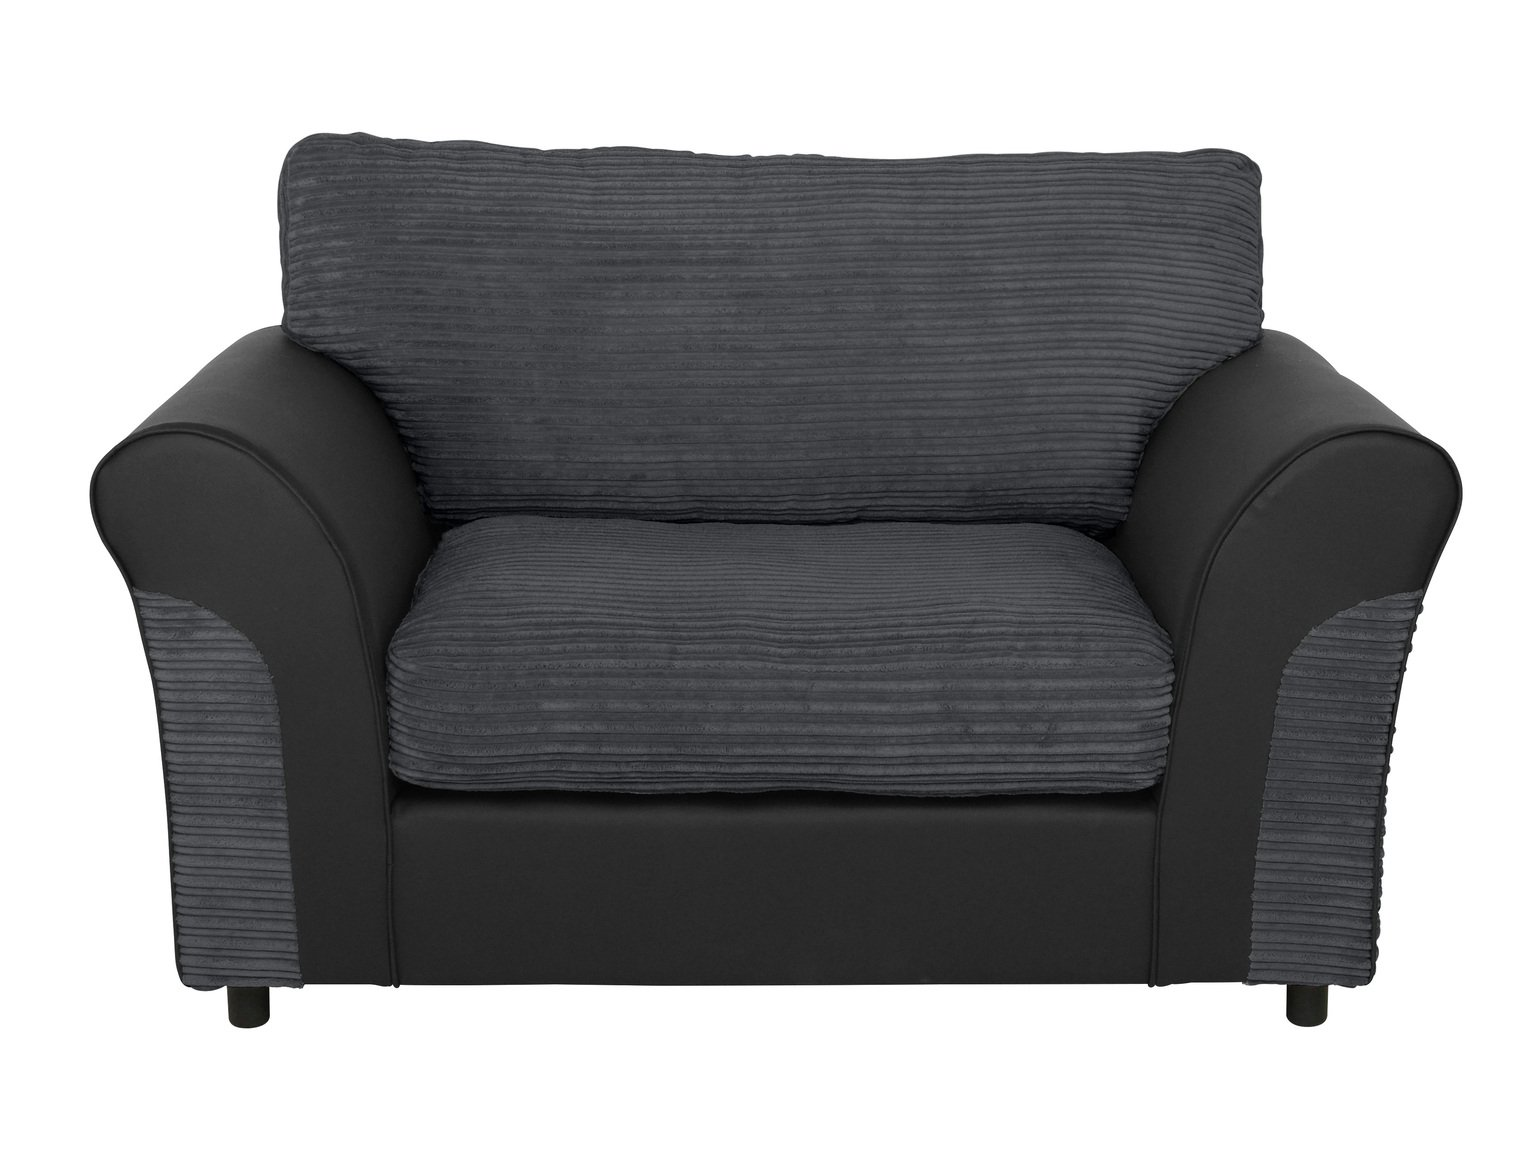 Argos Home Harry Fabric Cuddle Chair - Charcoal